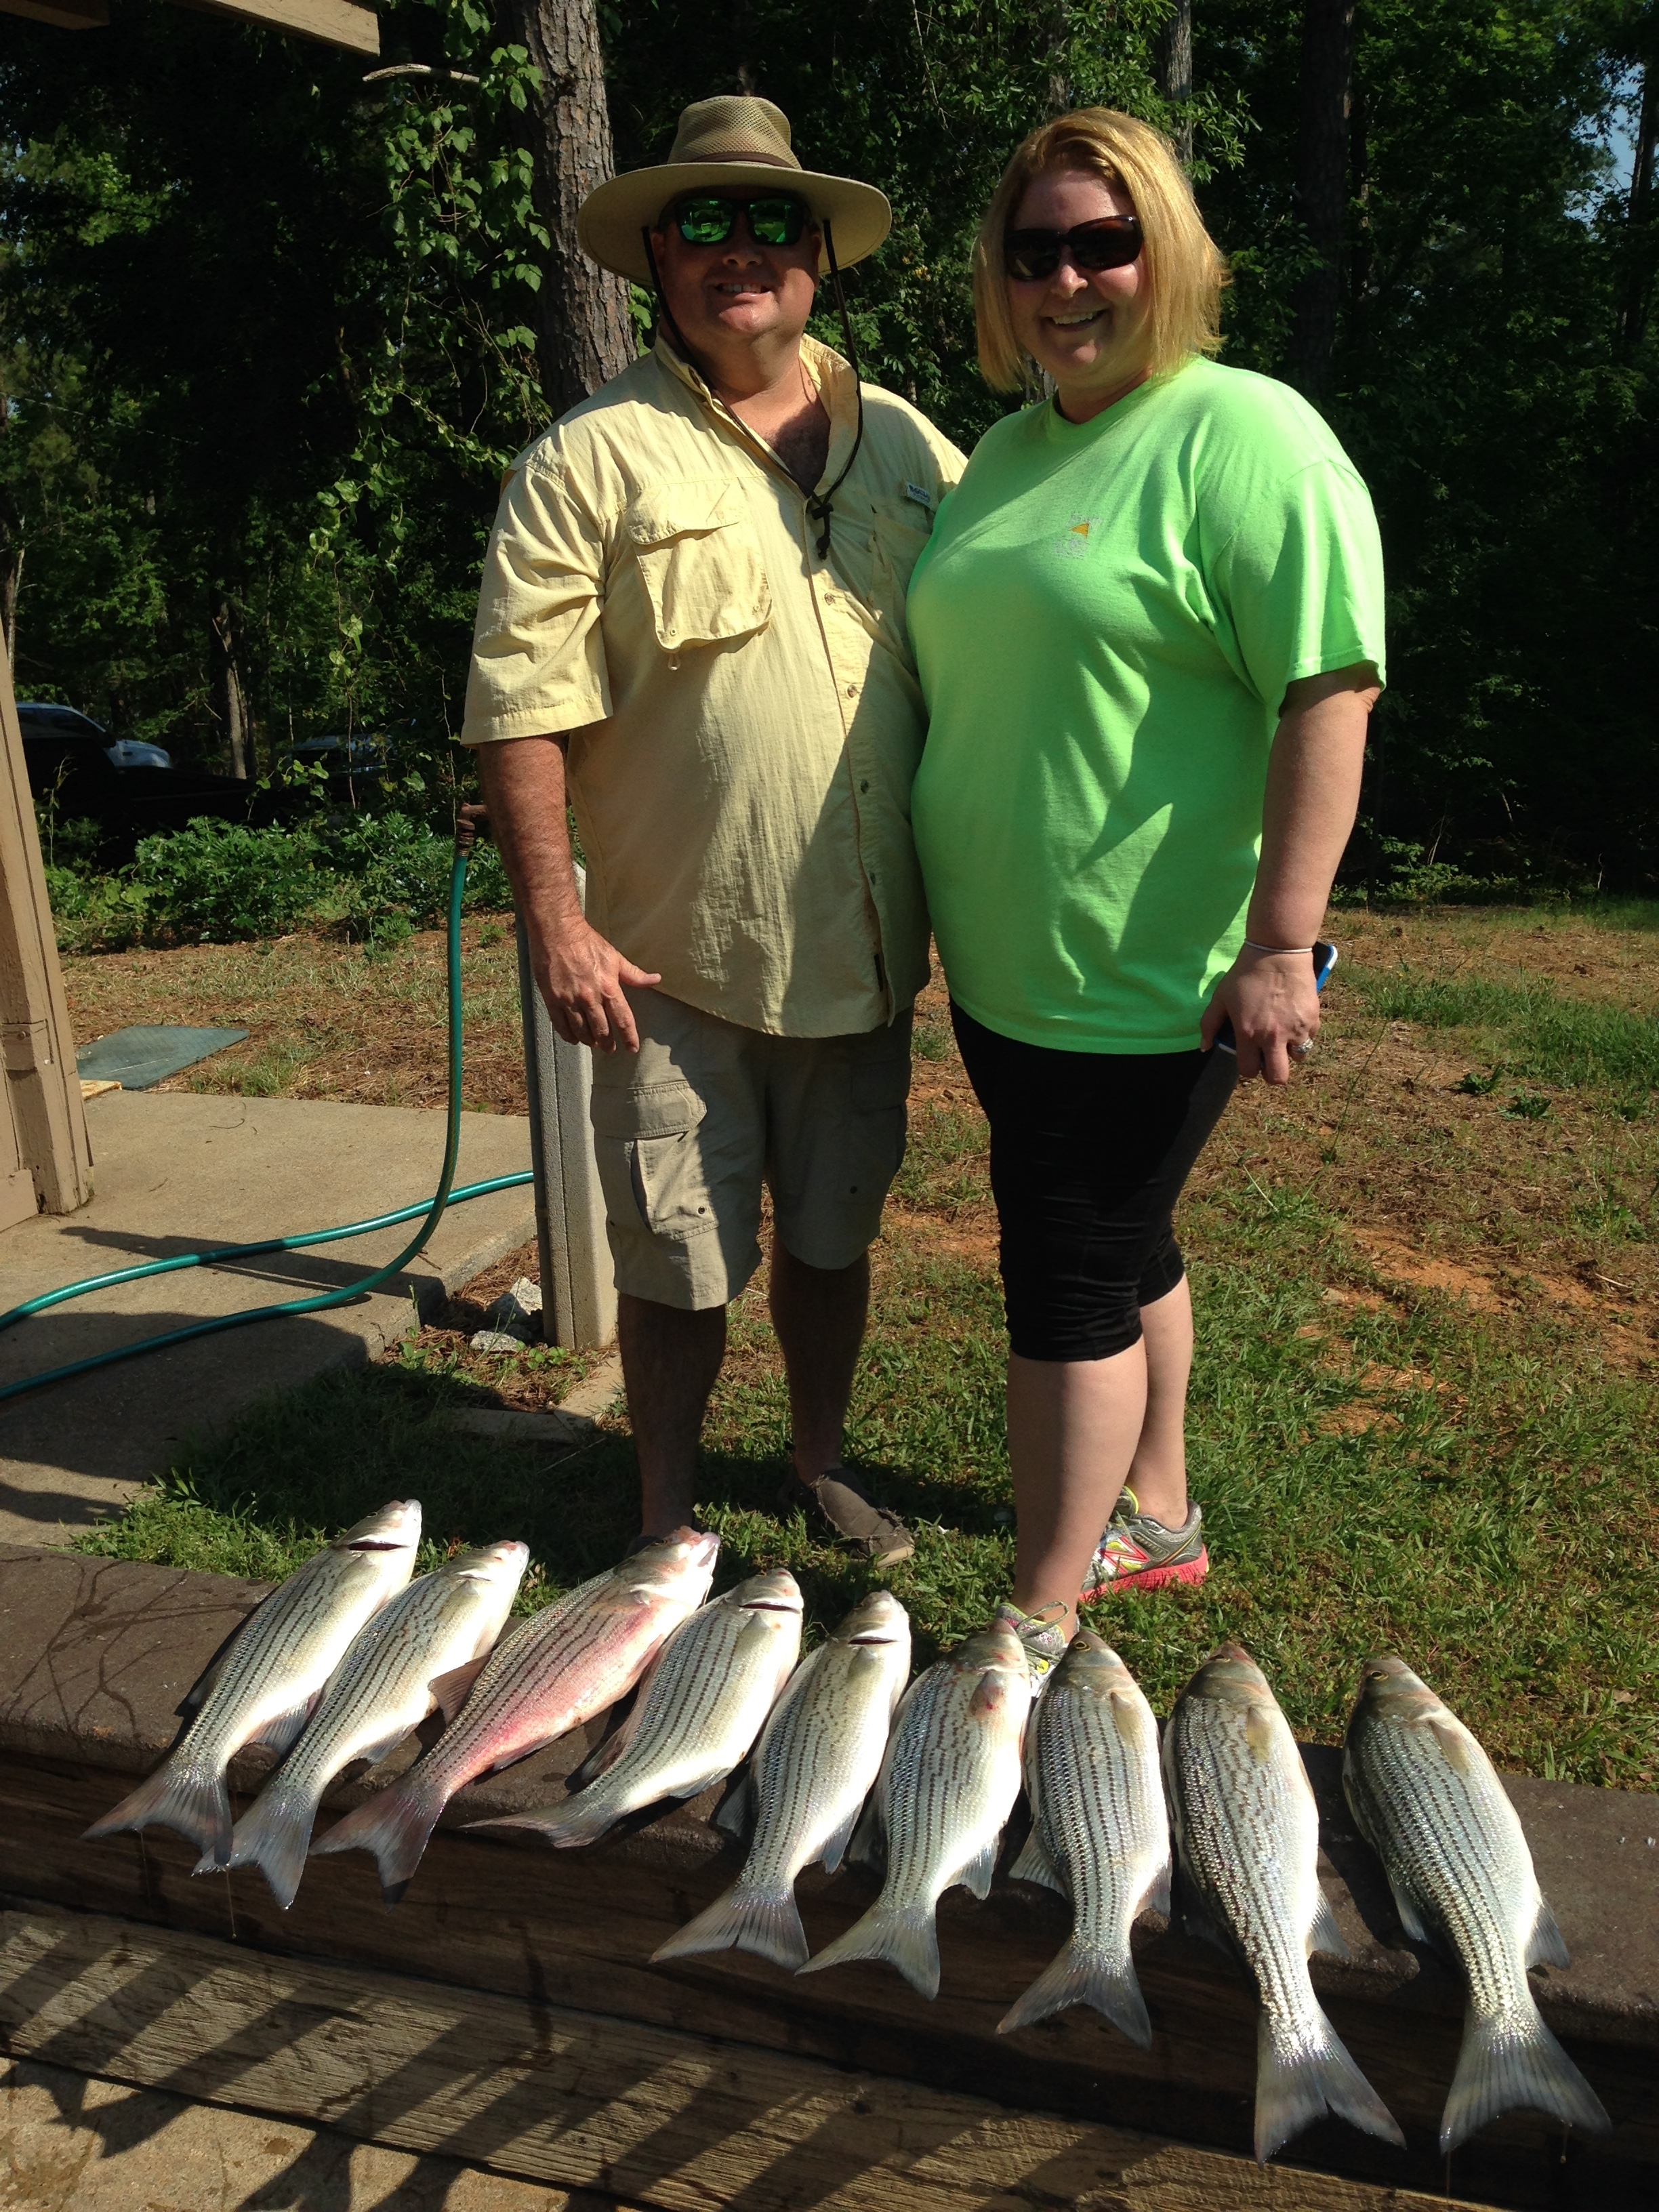 May 12, 2018 Jim and Loren with their nice catch.